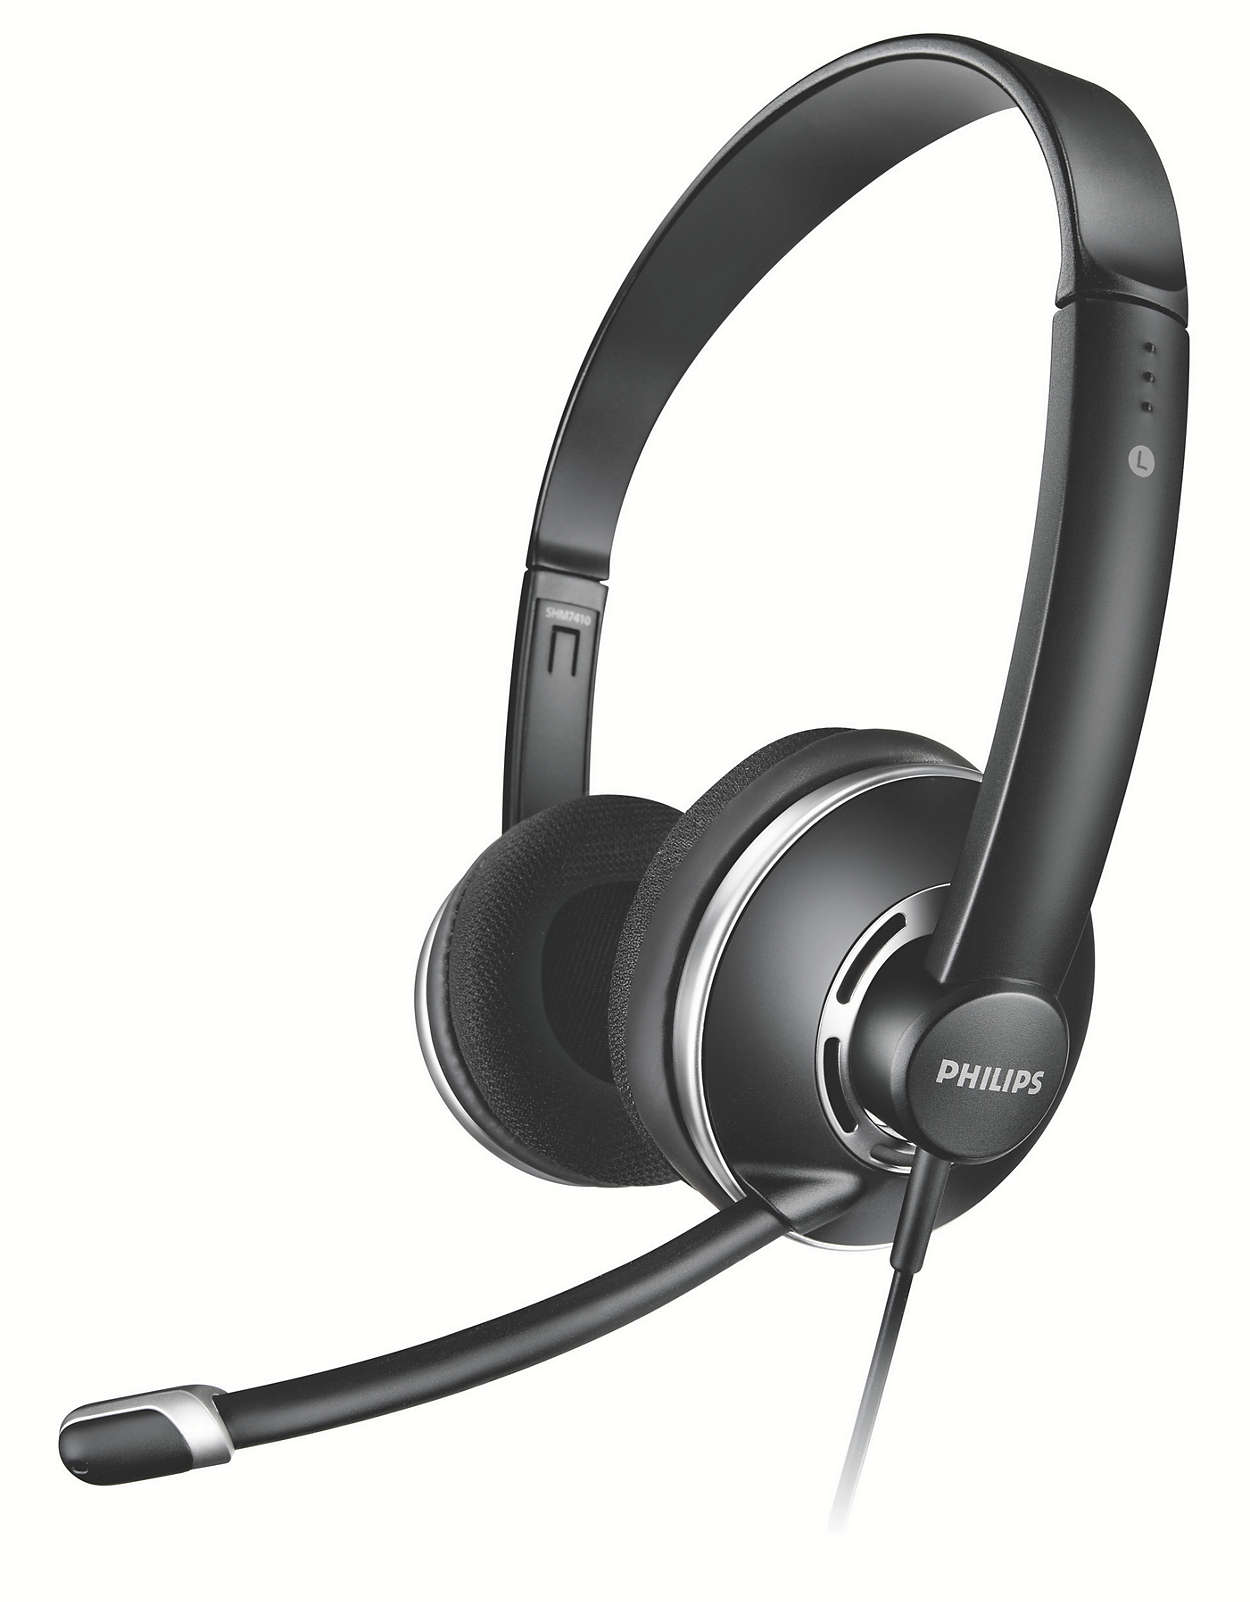 Full-size stereo PC headset